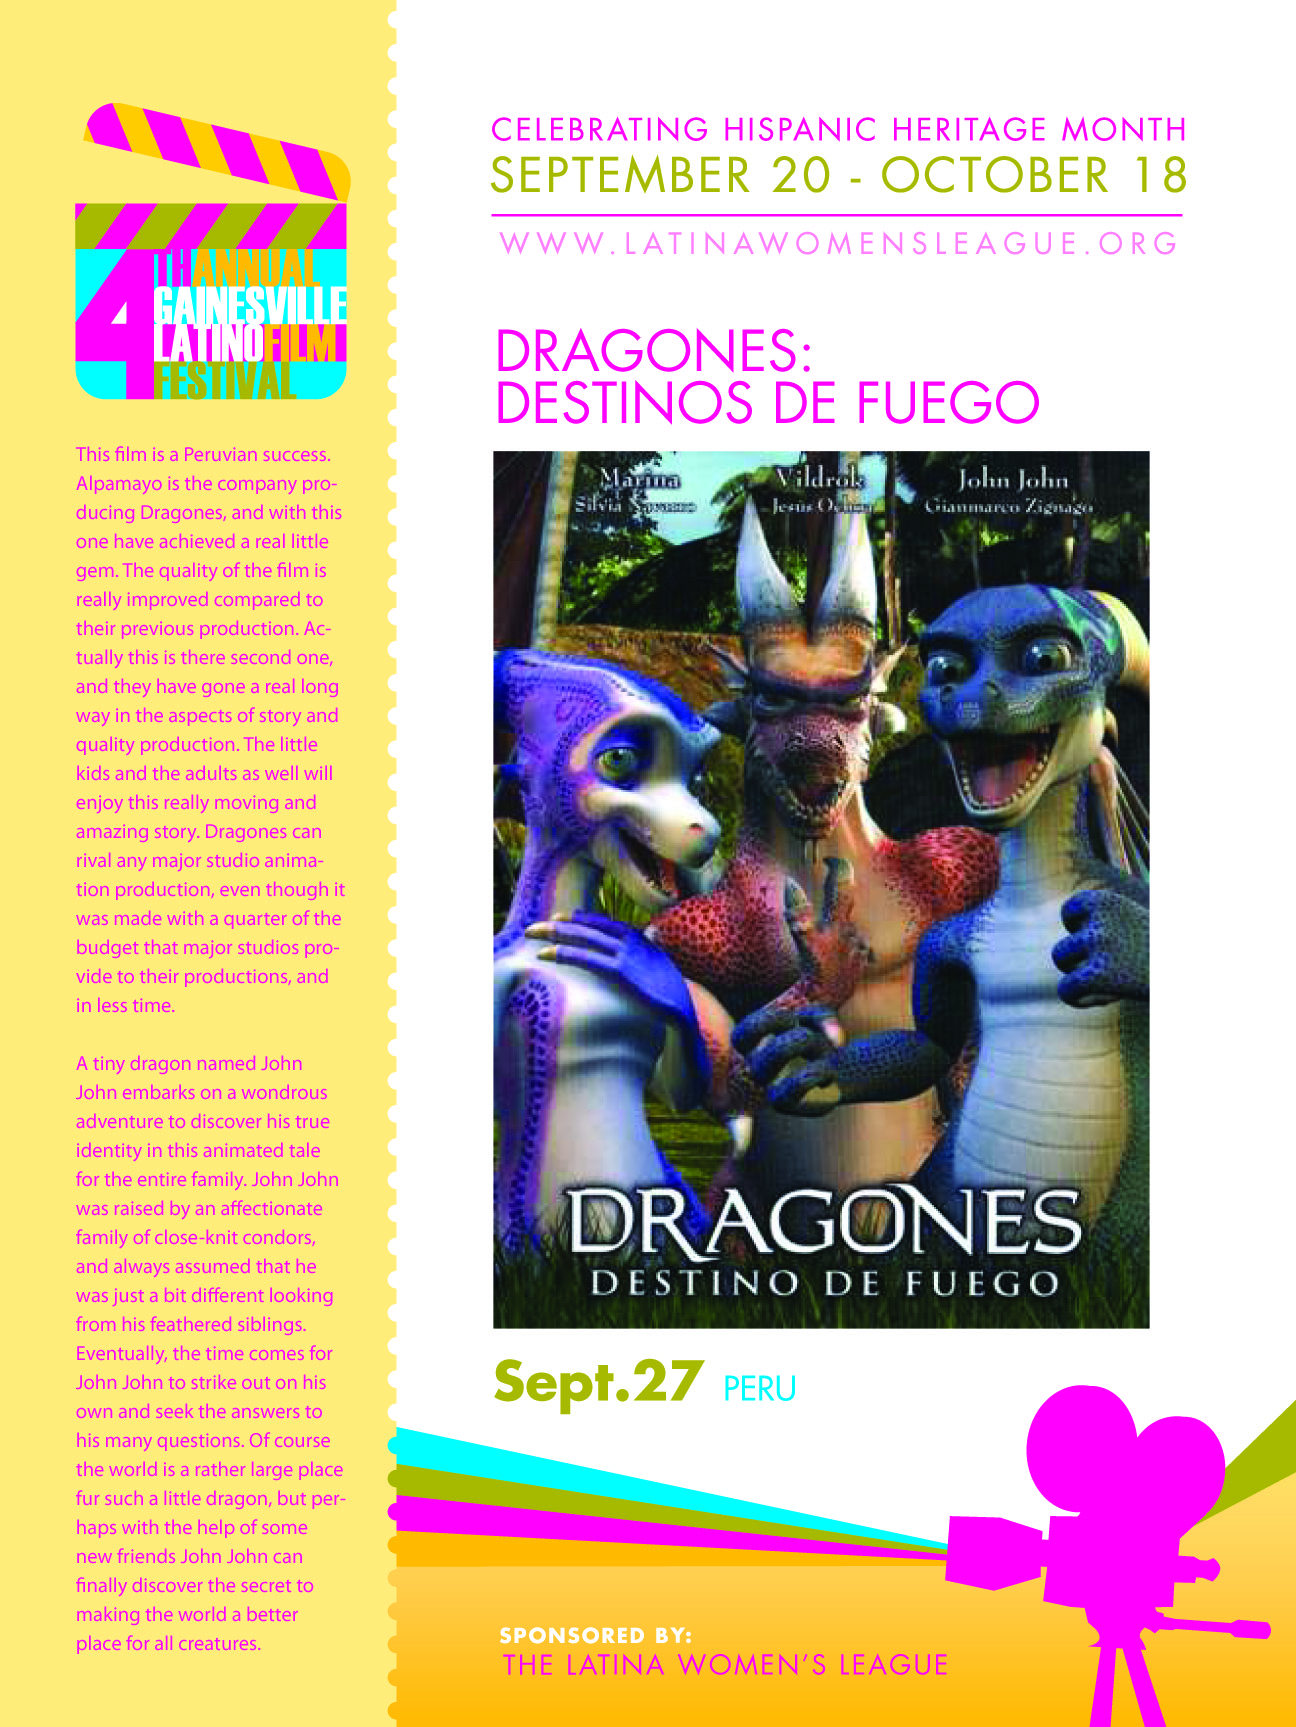 Dragones destino de fuego / Dragons, Destiny of Fire